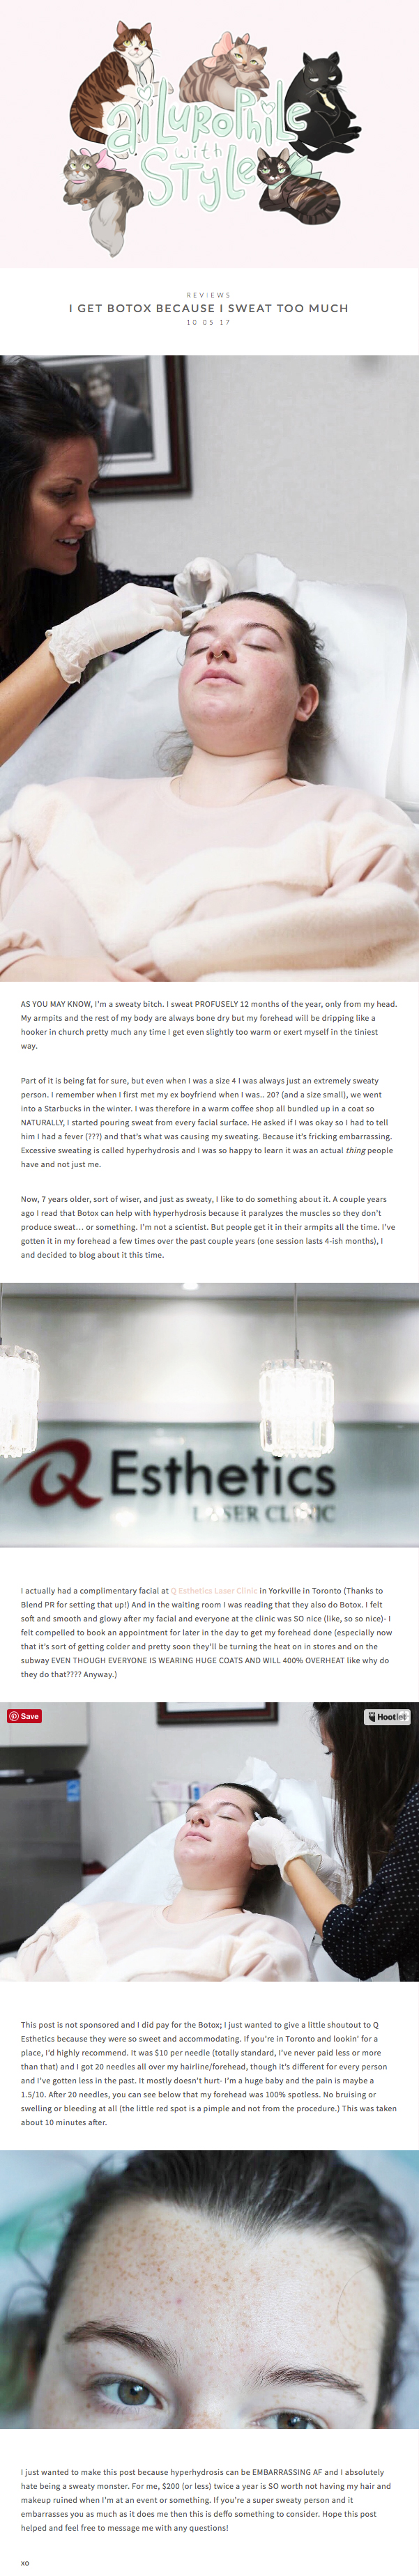 Q Esthetics featured on  Ailurophile with Style .